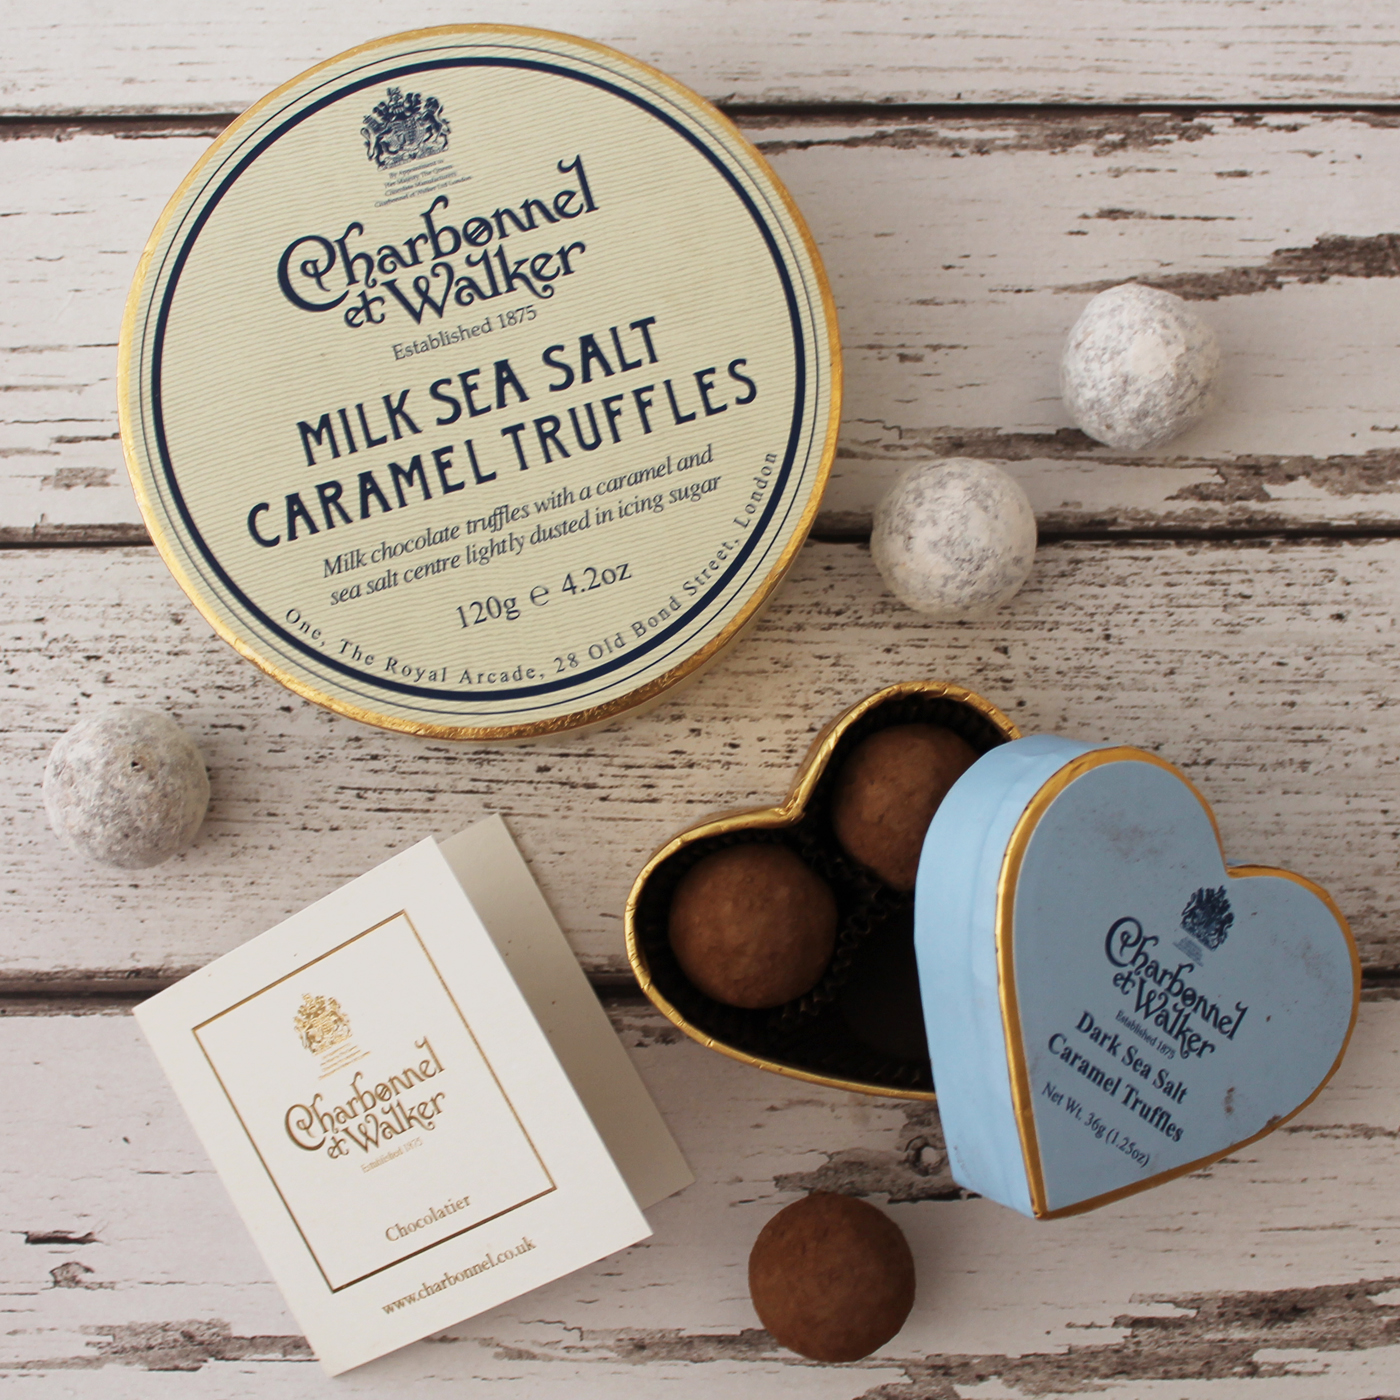 Charbonnel et Walker, Charbonnel et Walker milk sea salt caramel truffles, Charbonnel et Walker dark sea salt caramel truffles